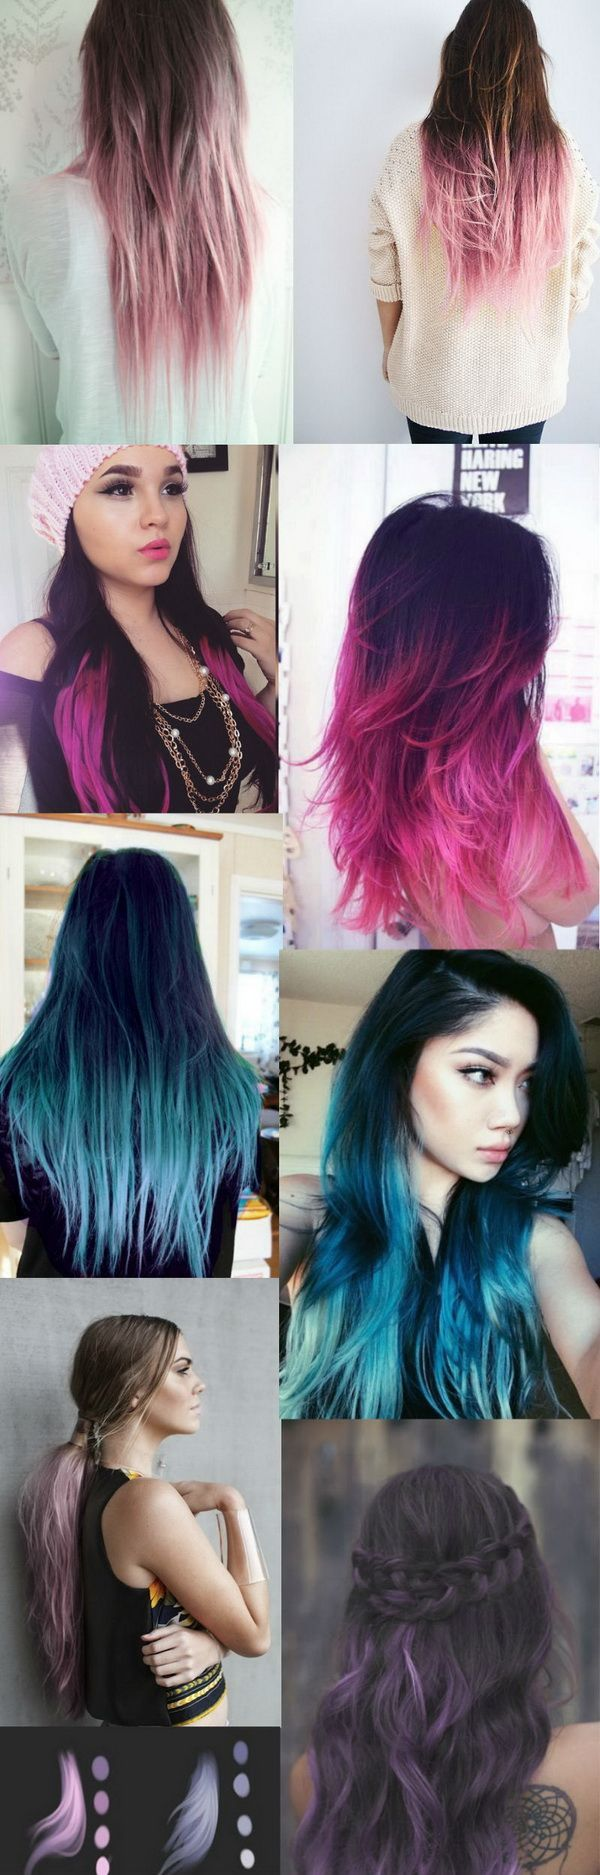 Picture of black and magenta balayage hair - Dark Black Brown To Pastel Ombre Hair Color Trends 2015